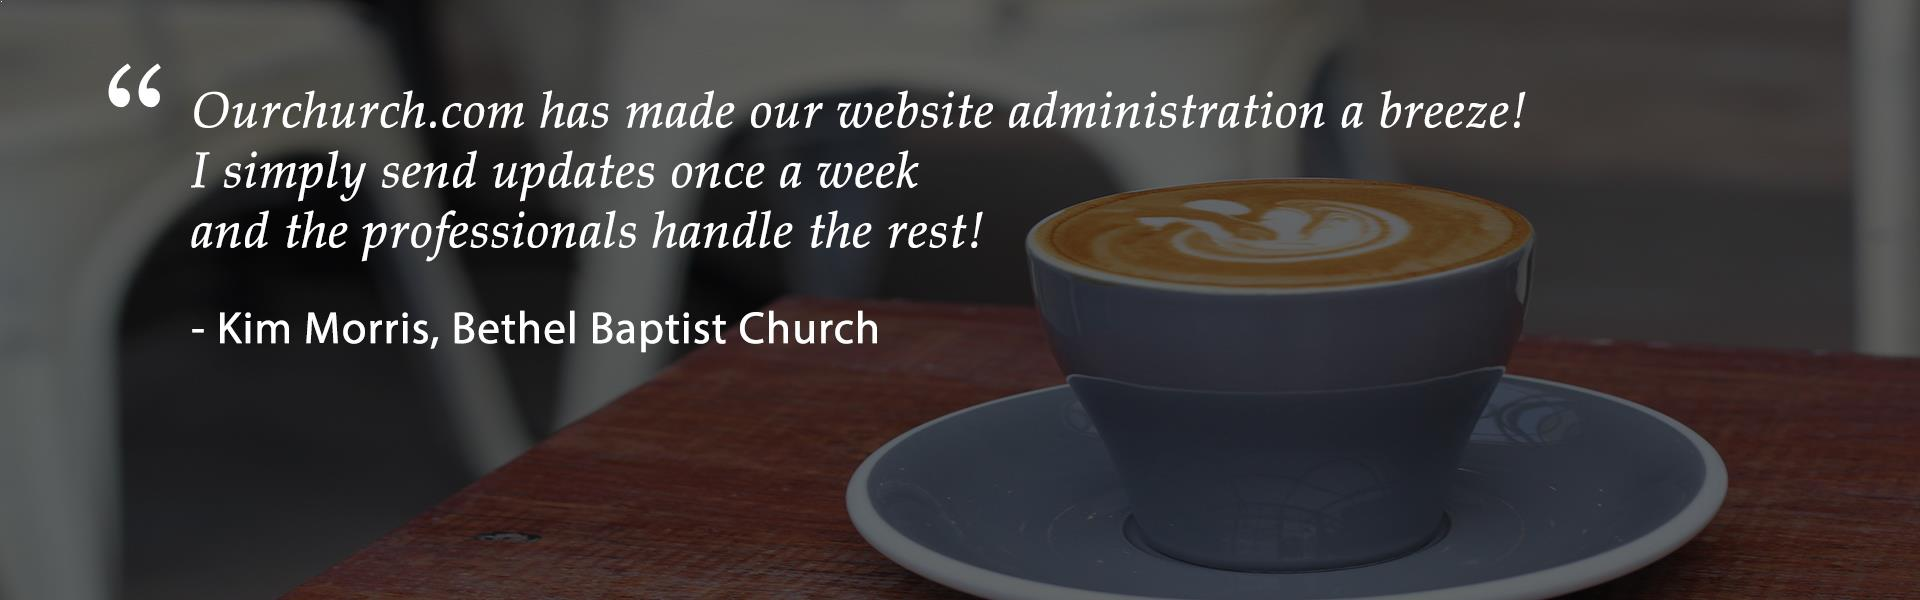 Christian church web design testimonial